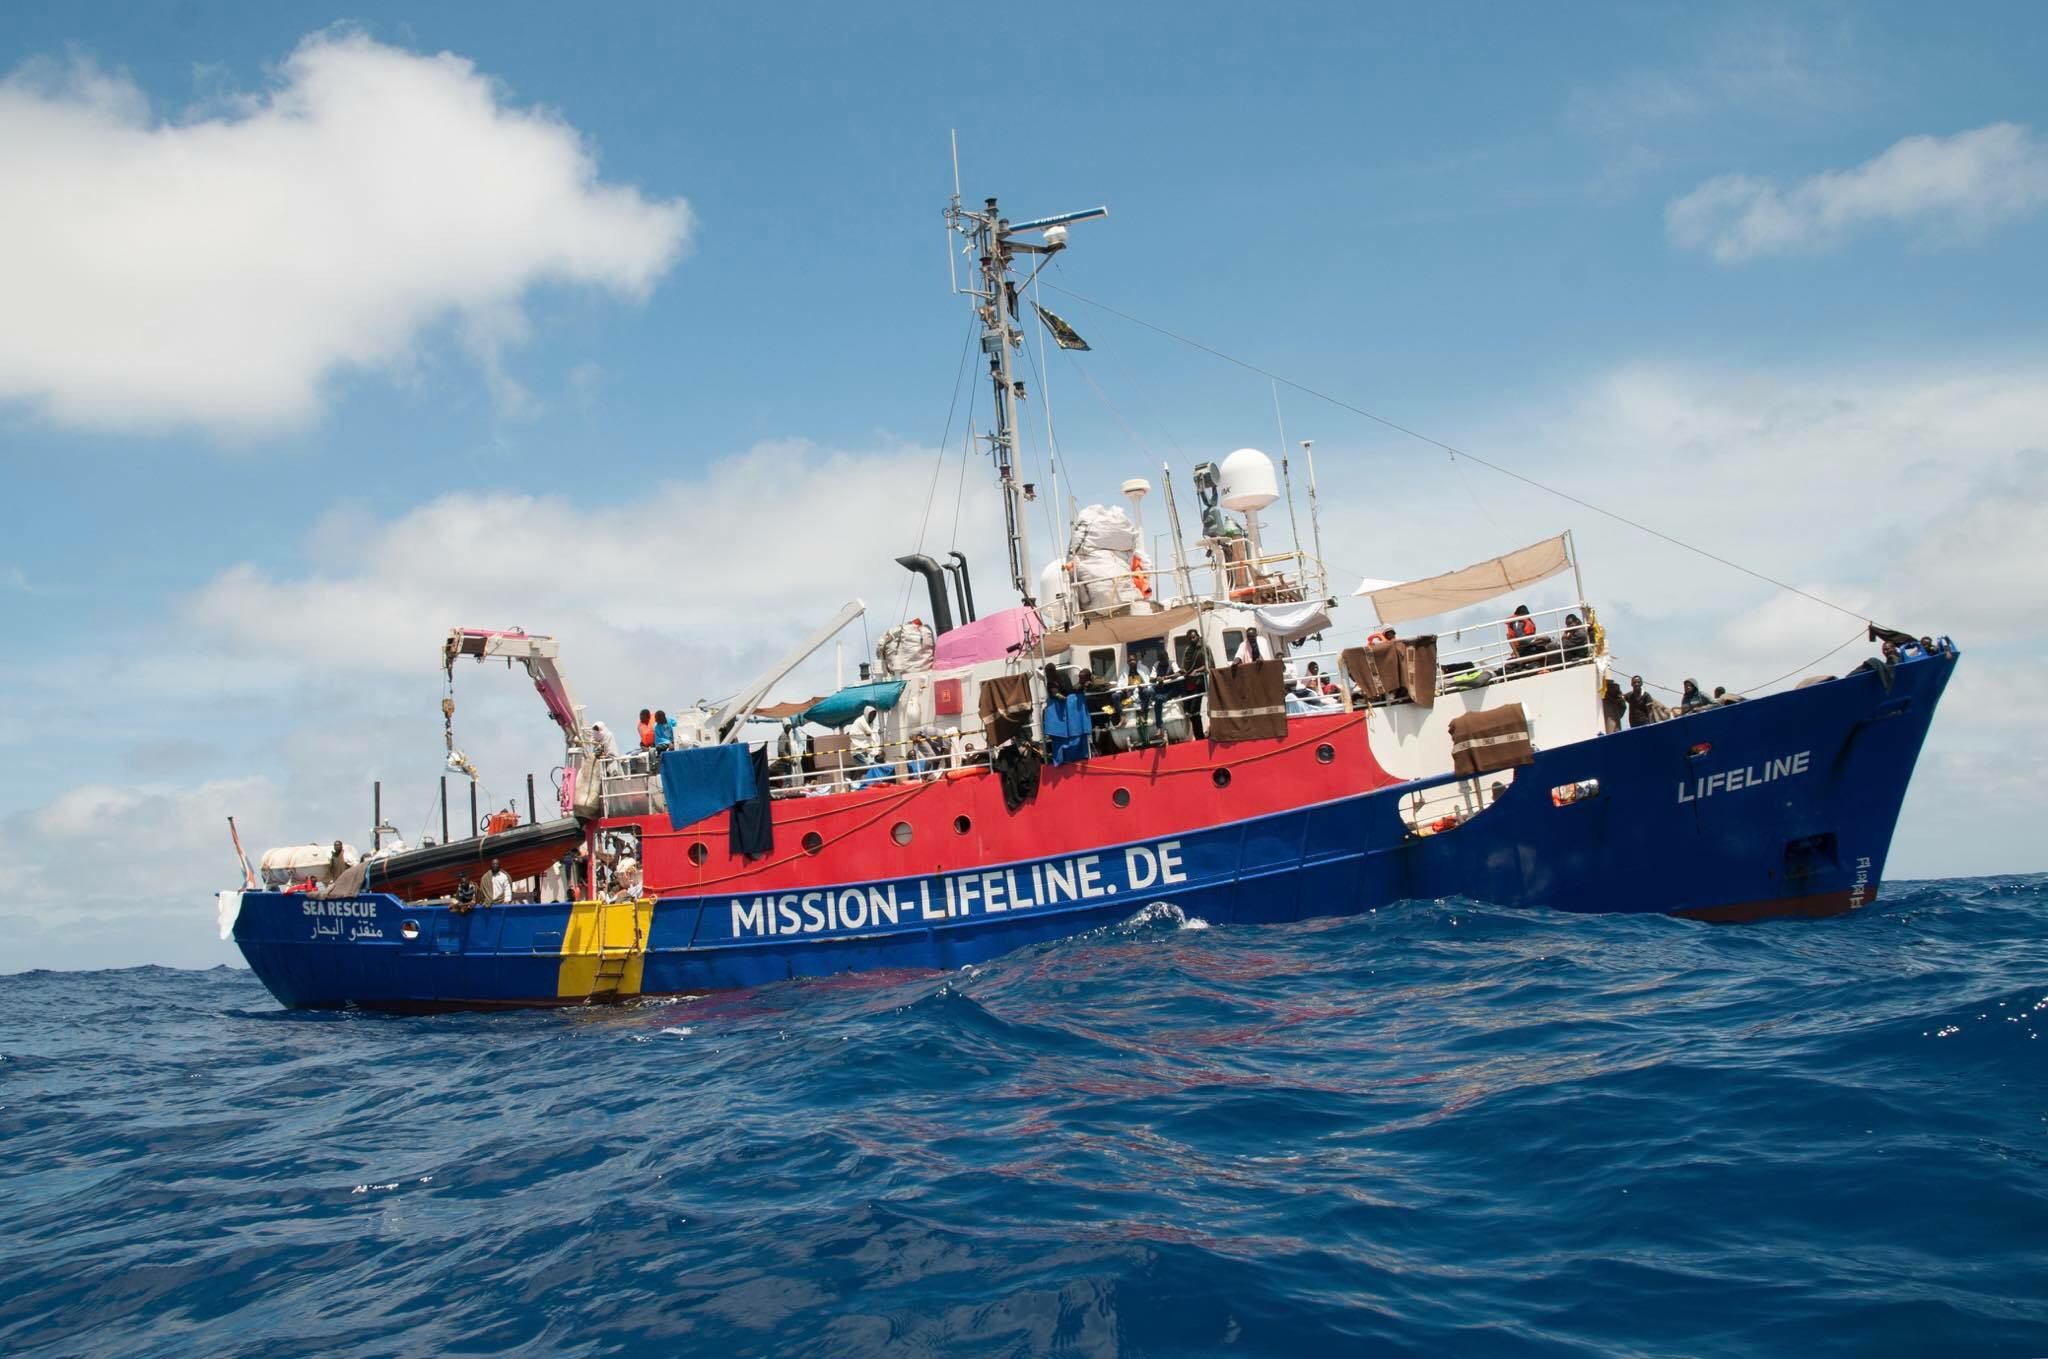 Lifeline Immigrants boat